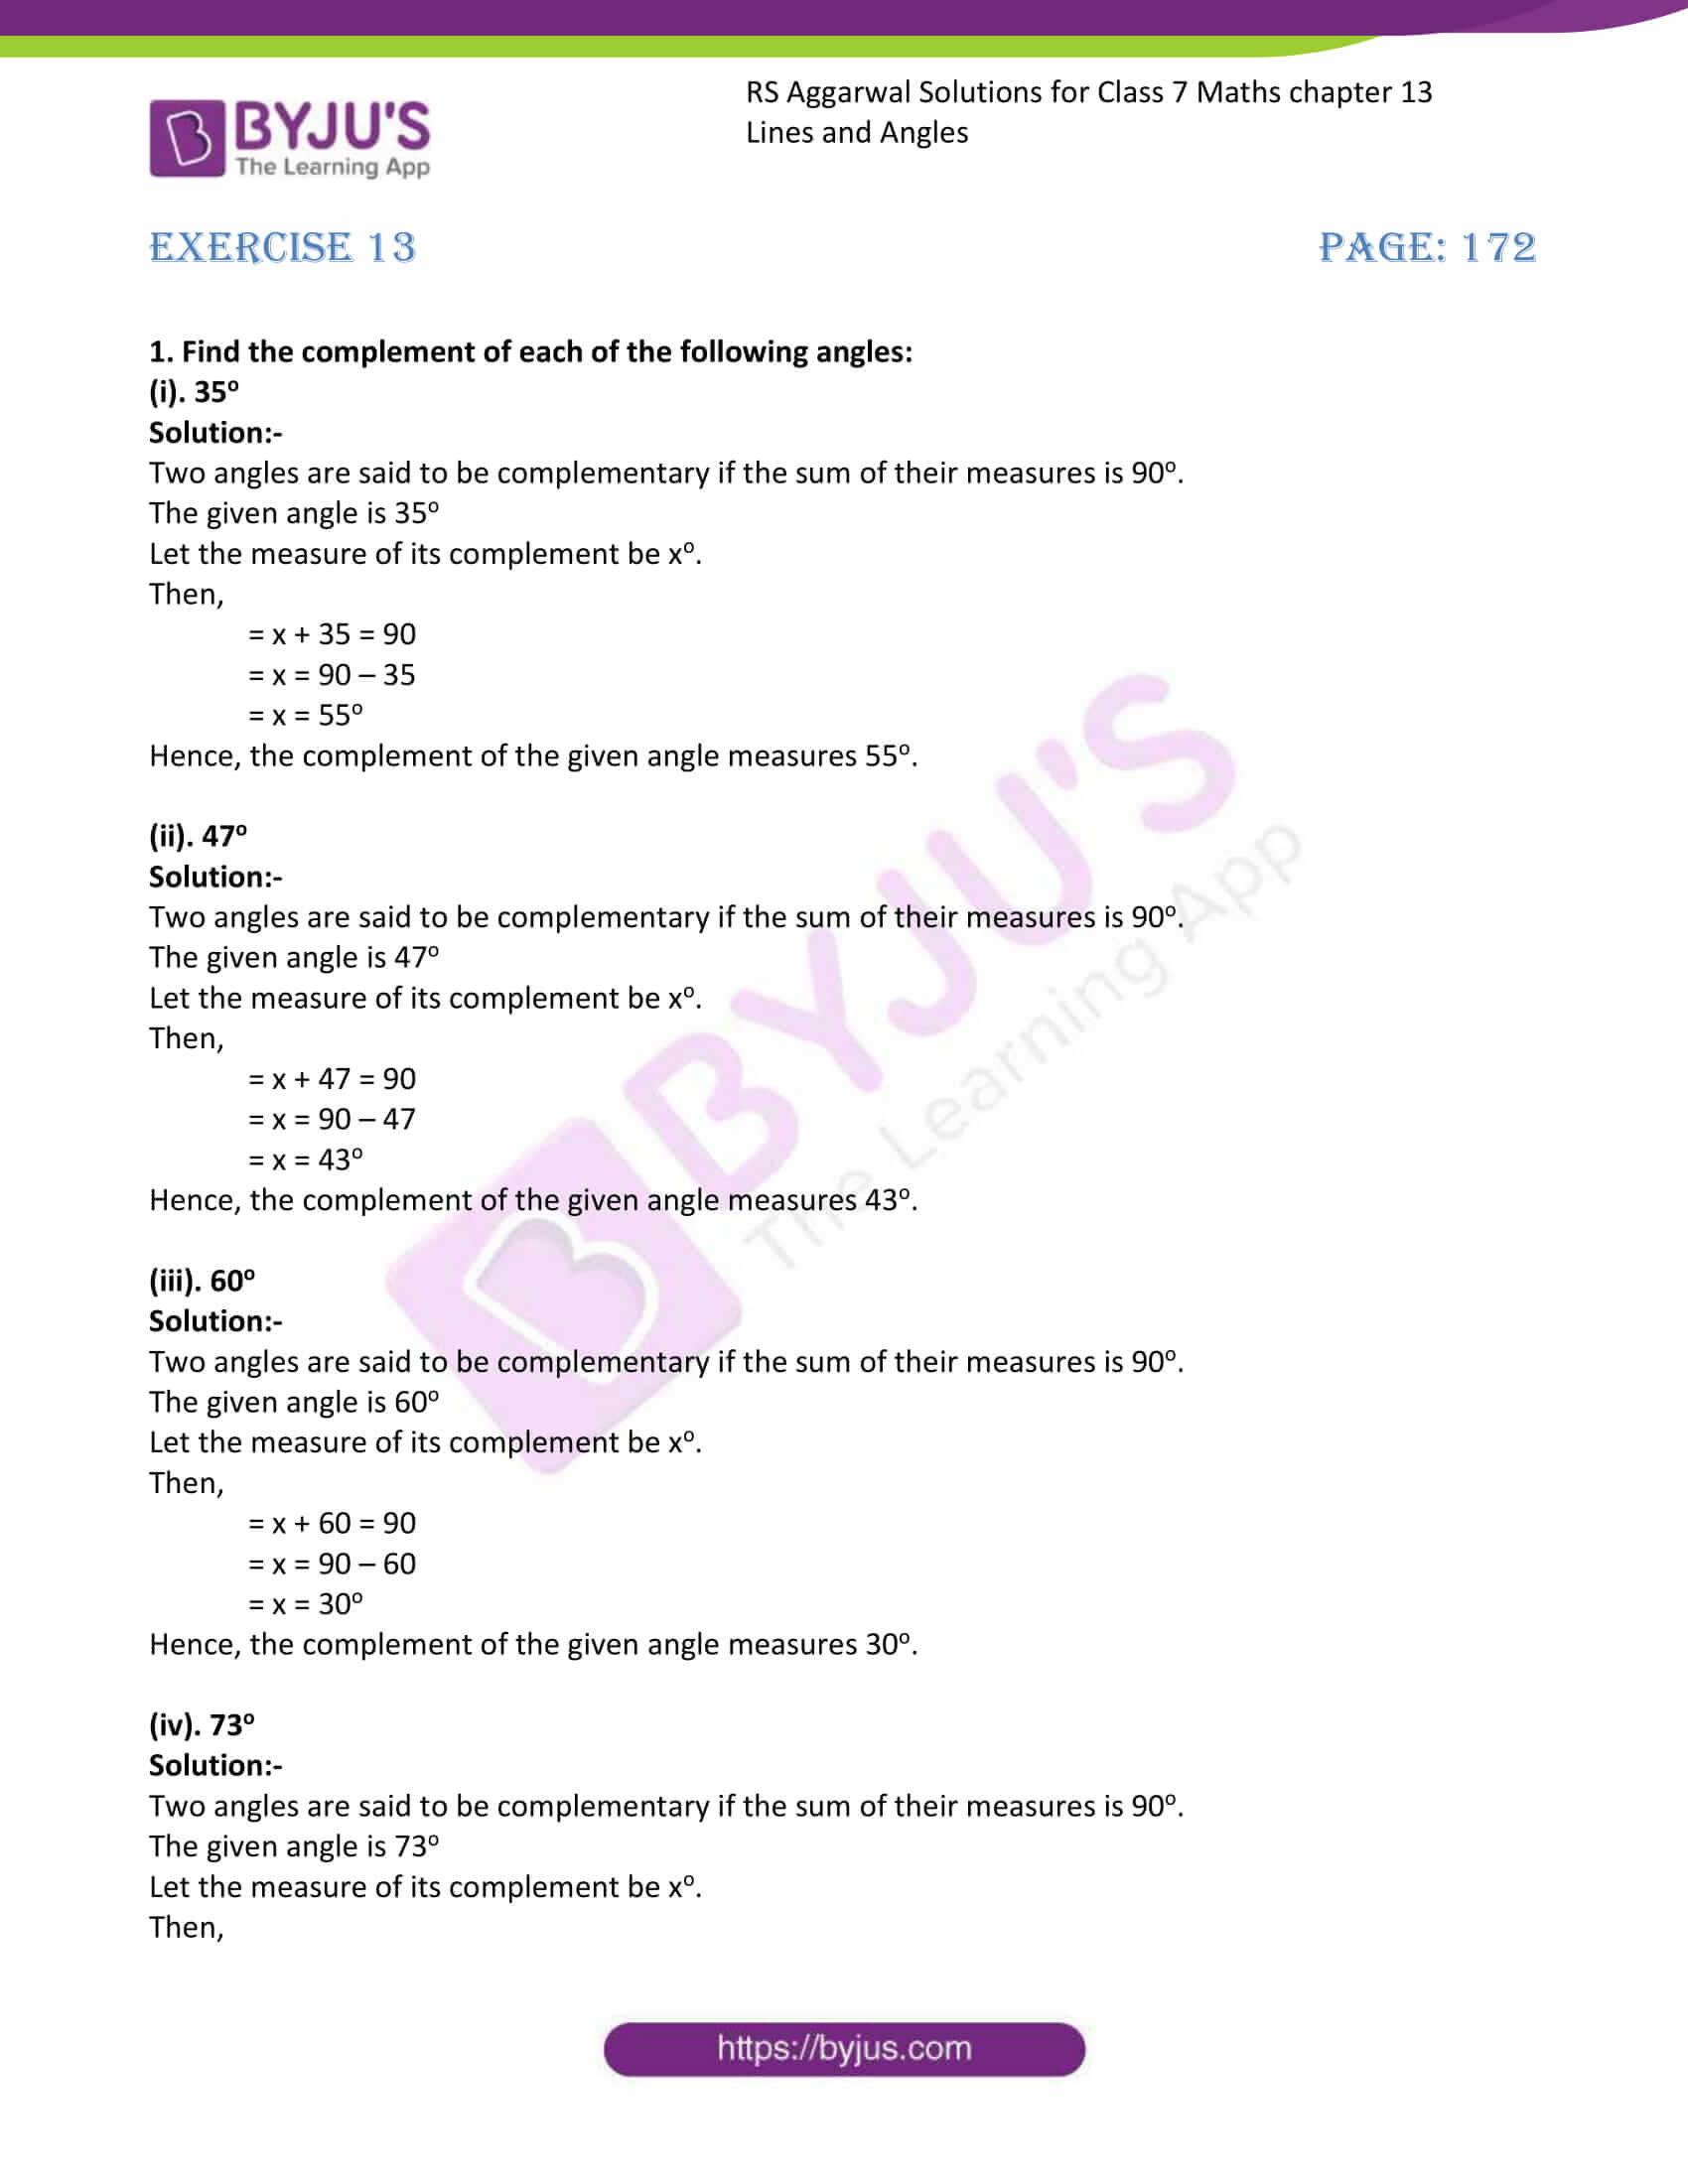 RS Aggarwal Solutions Class 7 Maths Chapter 13 Lines and Angles 1